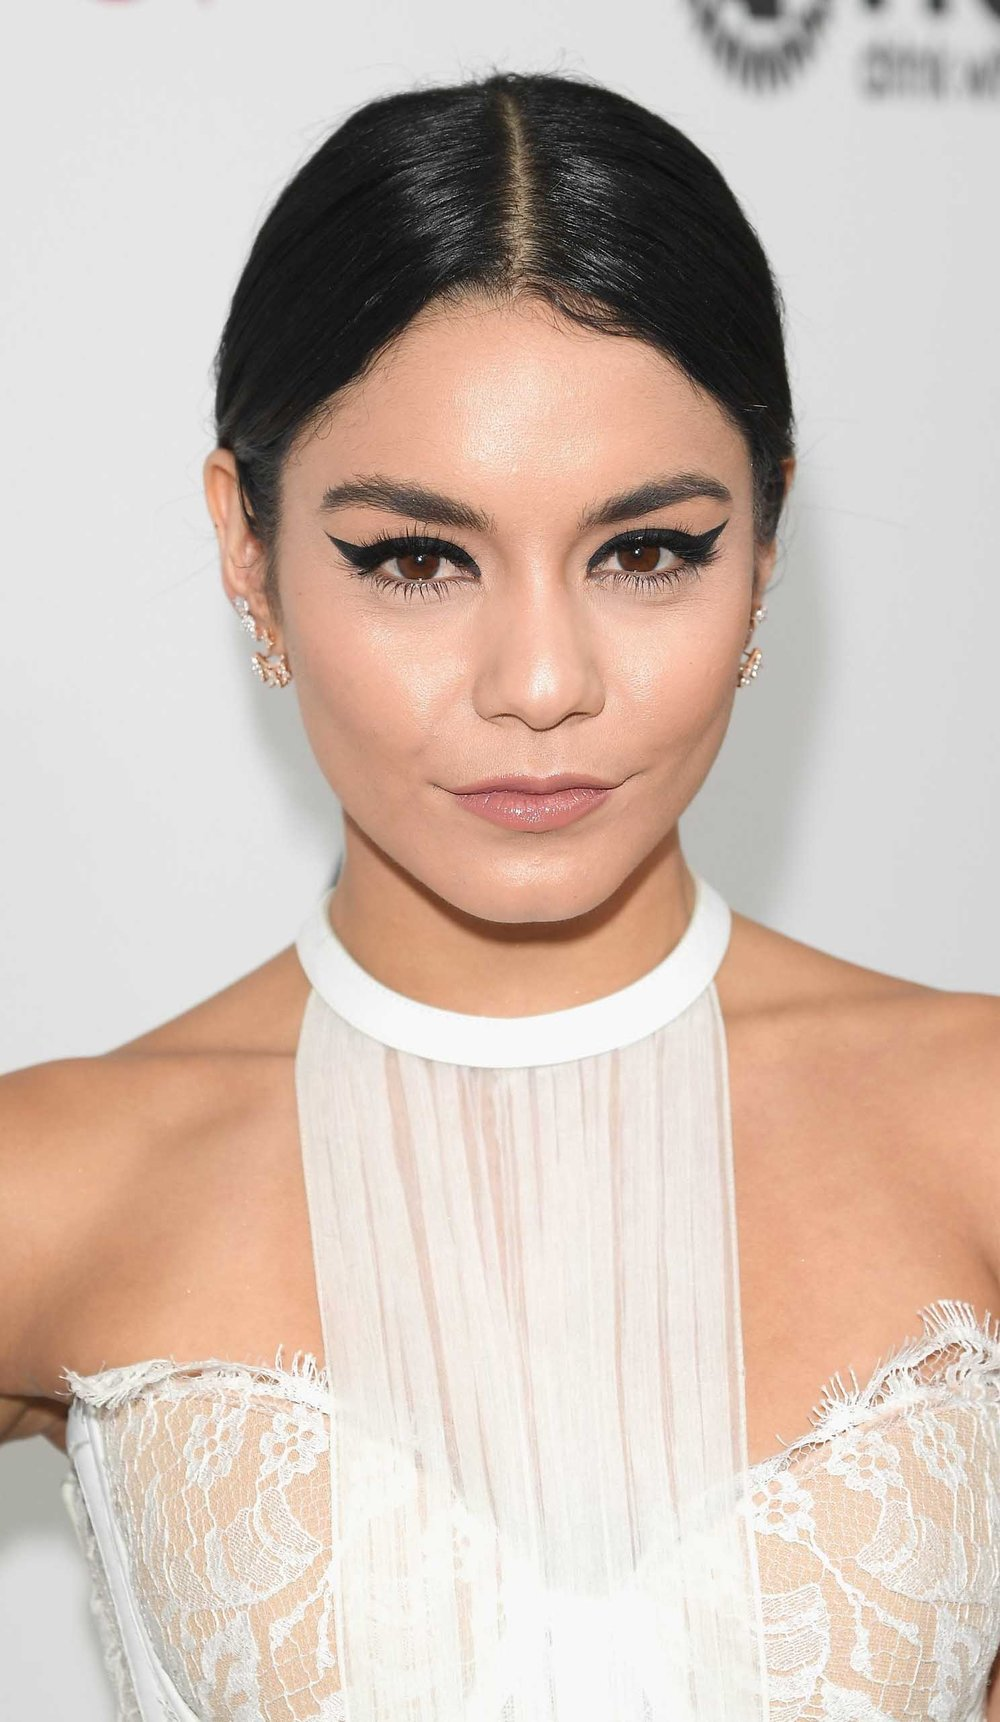 hair-vanessahudgens-brun-cat-eyeliner-white-dress-updo.jpg